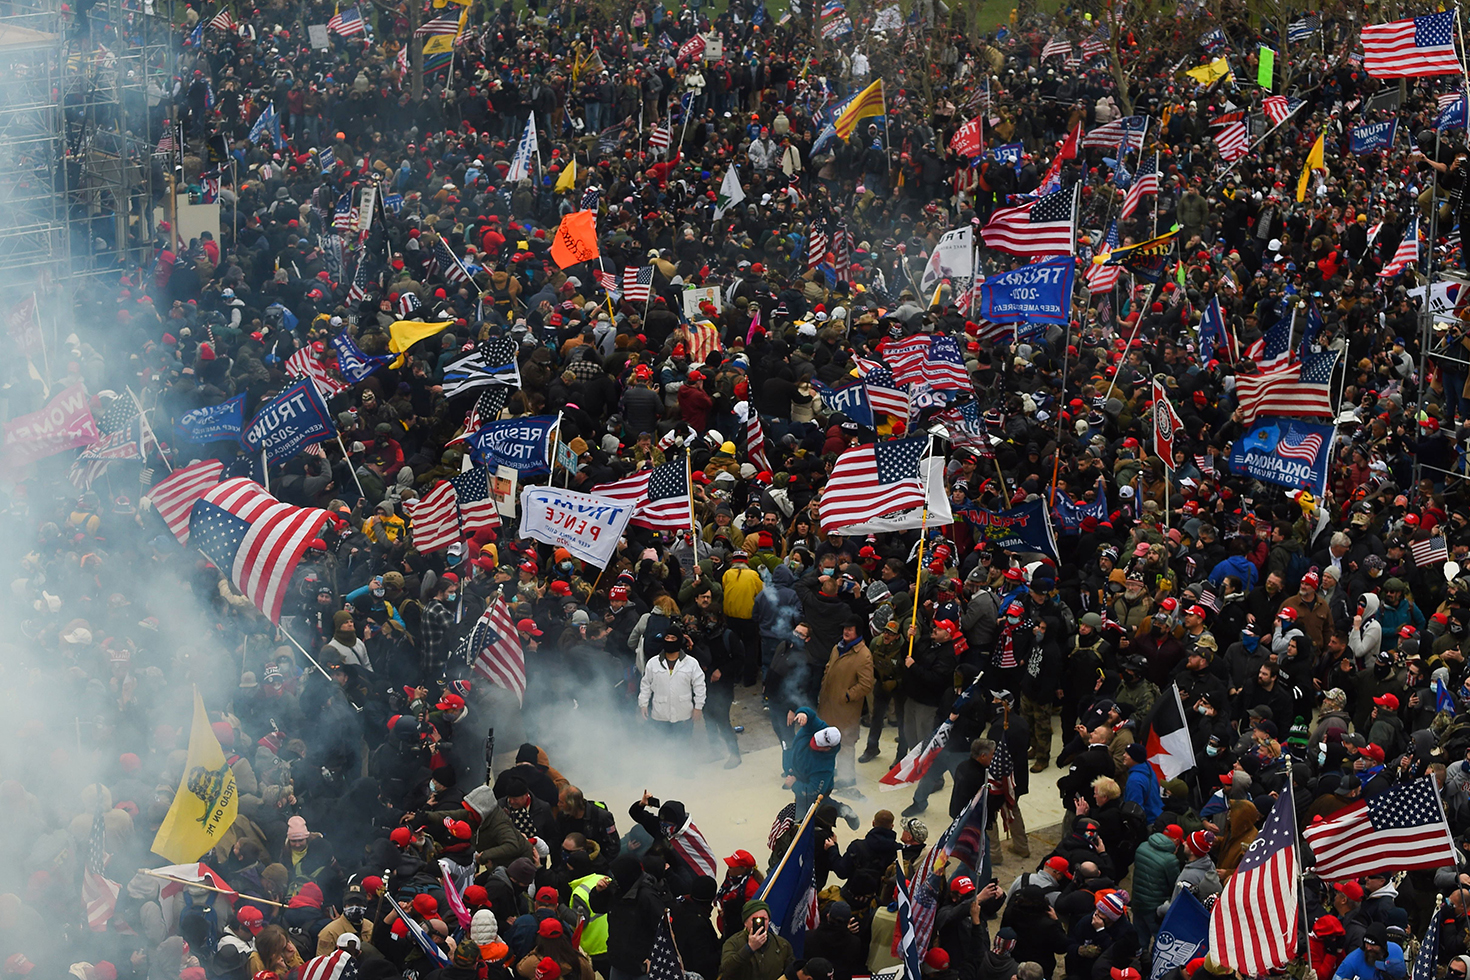 Supporters of U.S. President Donald Trump clash with police and security forces as they storm the U.S. Capitol in Washington on Jan. 6.